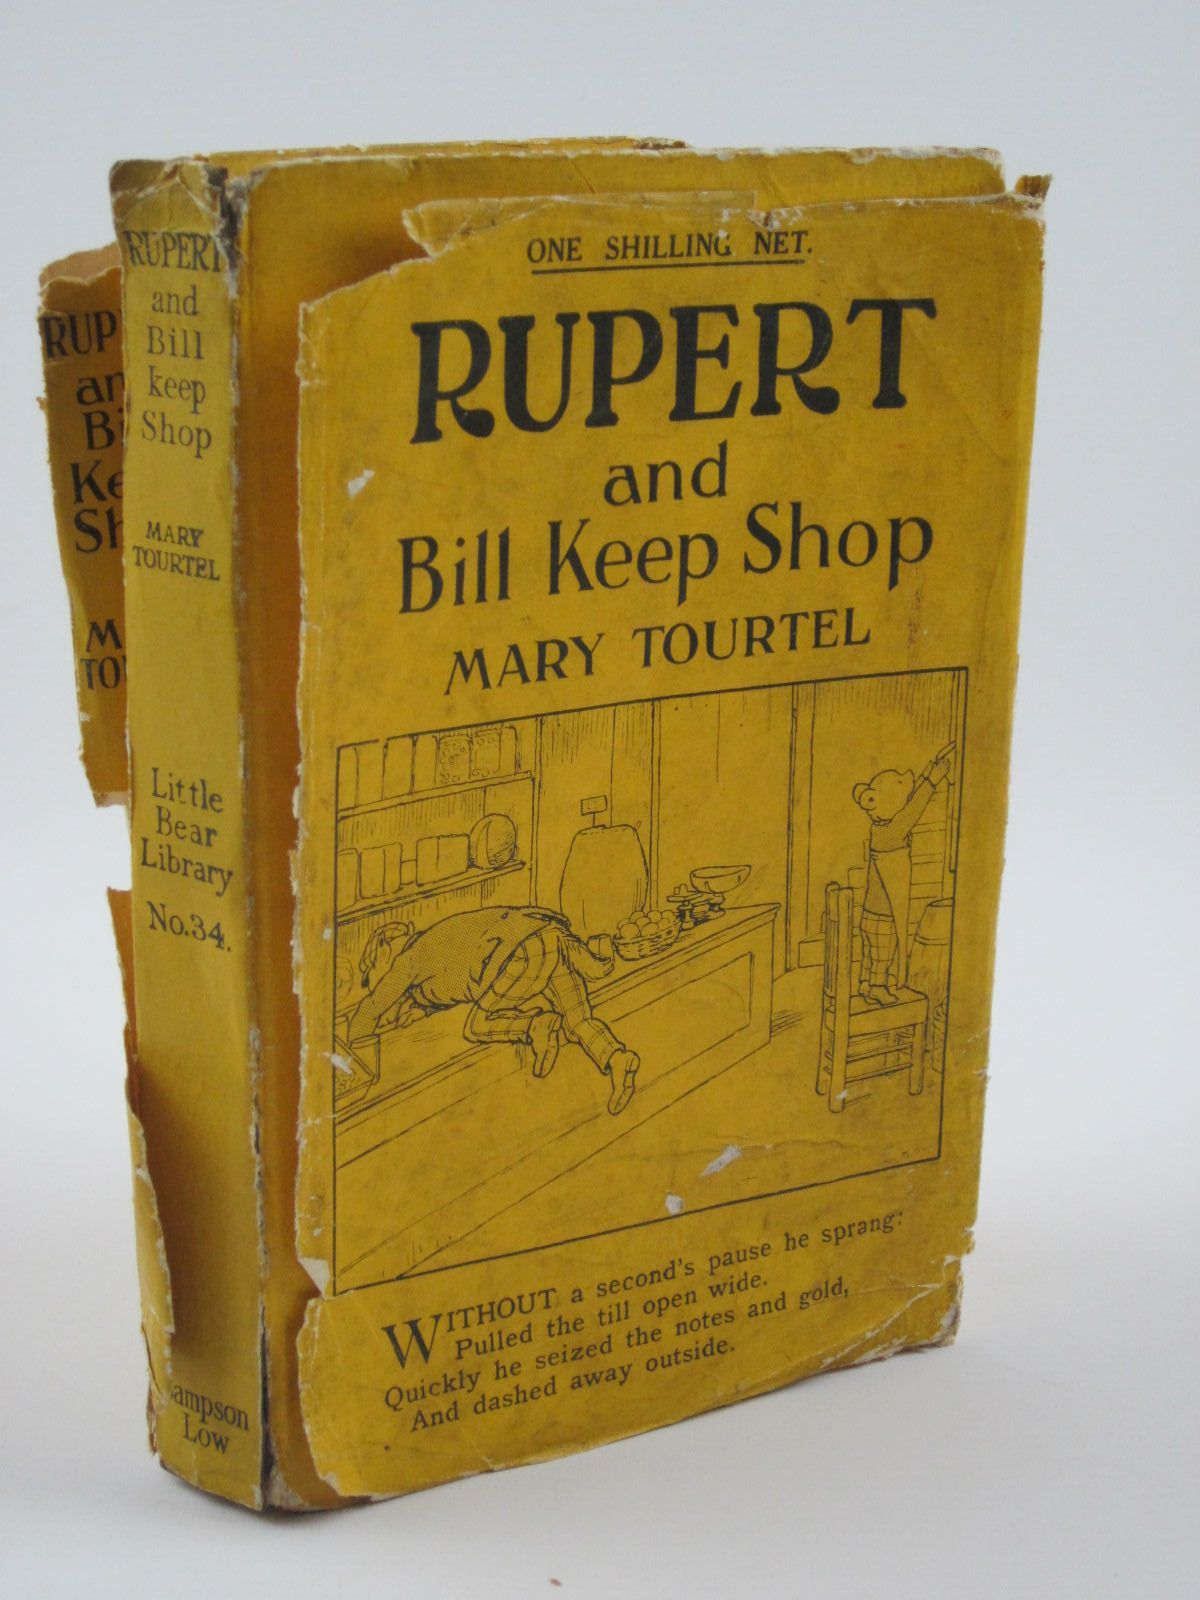 Photo of RUPERT AND BILL KEEP SHOP - RUPERT LITTLE BEAR LIBRARY No. 34 written by Tourtel, Mary illustrated by Tourtel, Mary published by Sampson Low, Marston & Co. Ltd. (STOCK CODE: 1309753)  for sale by Stella & Rose's Books